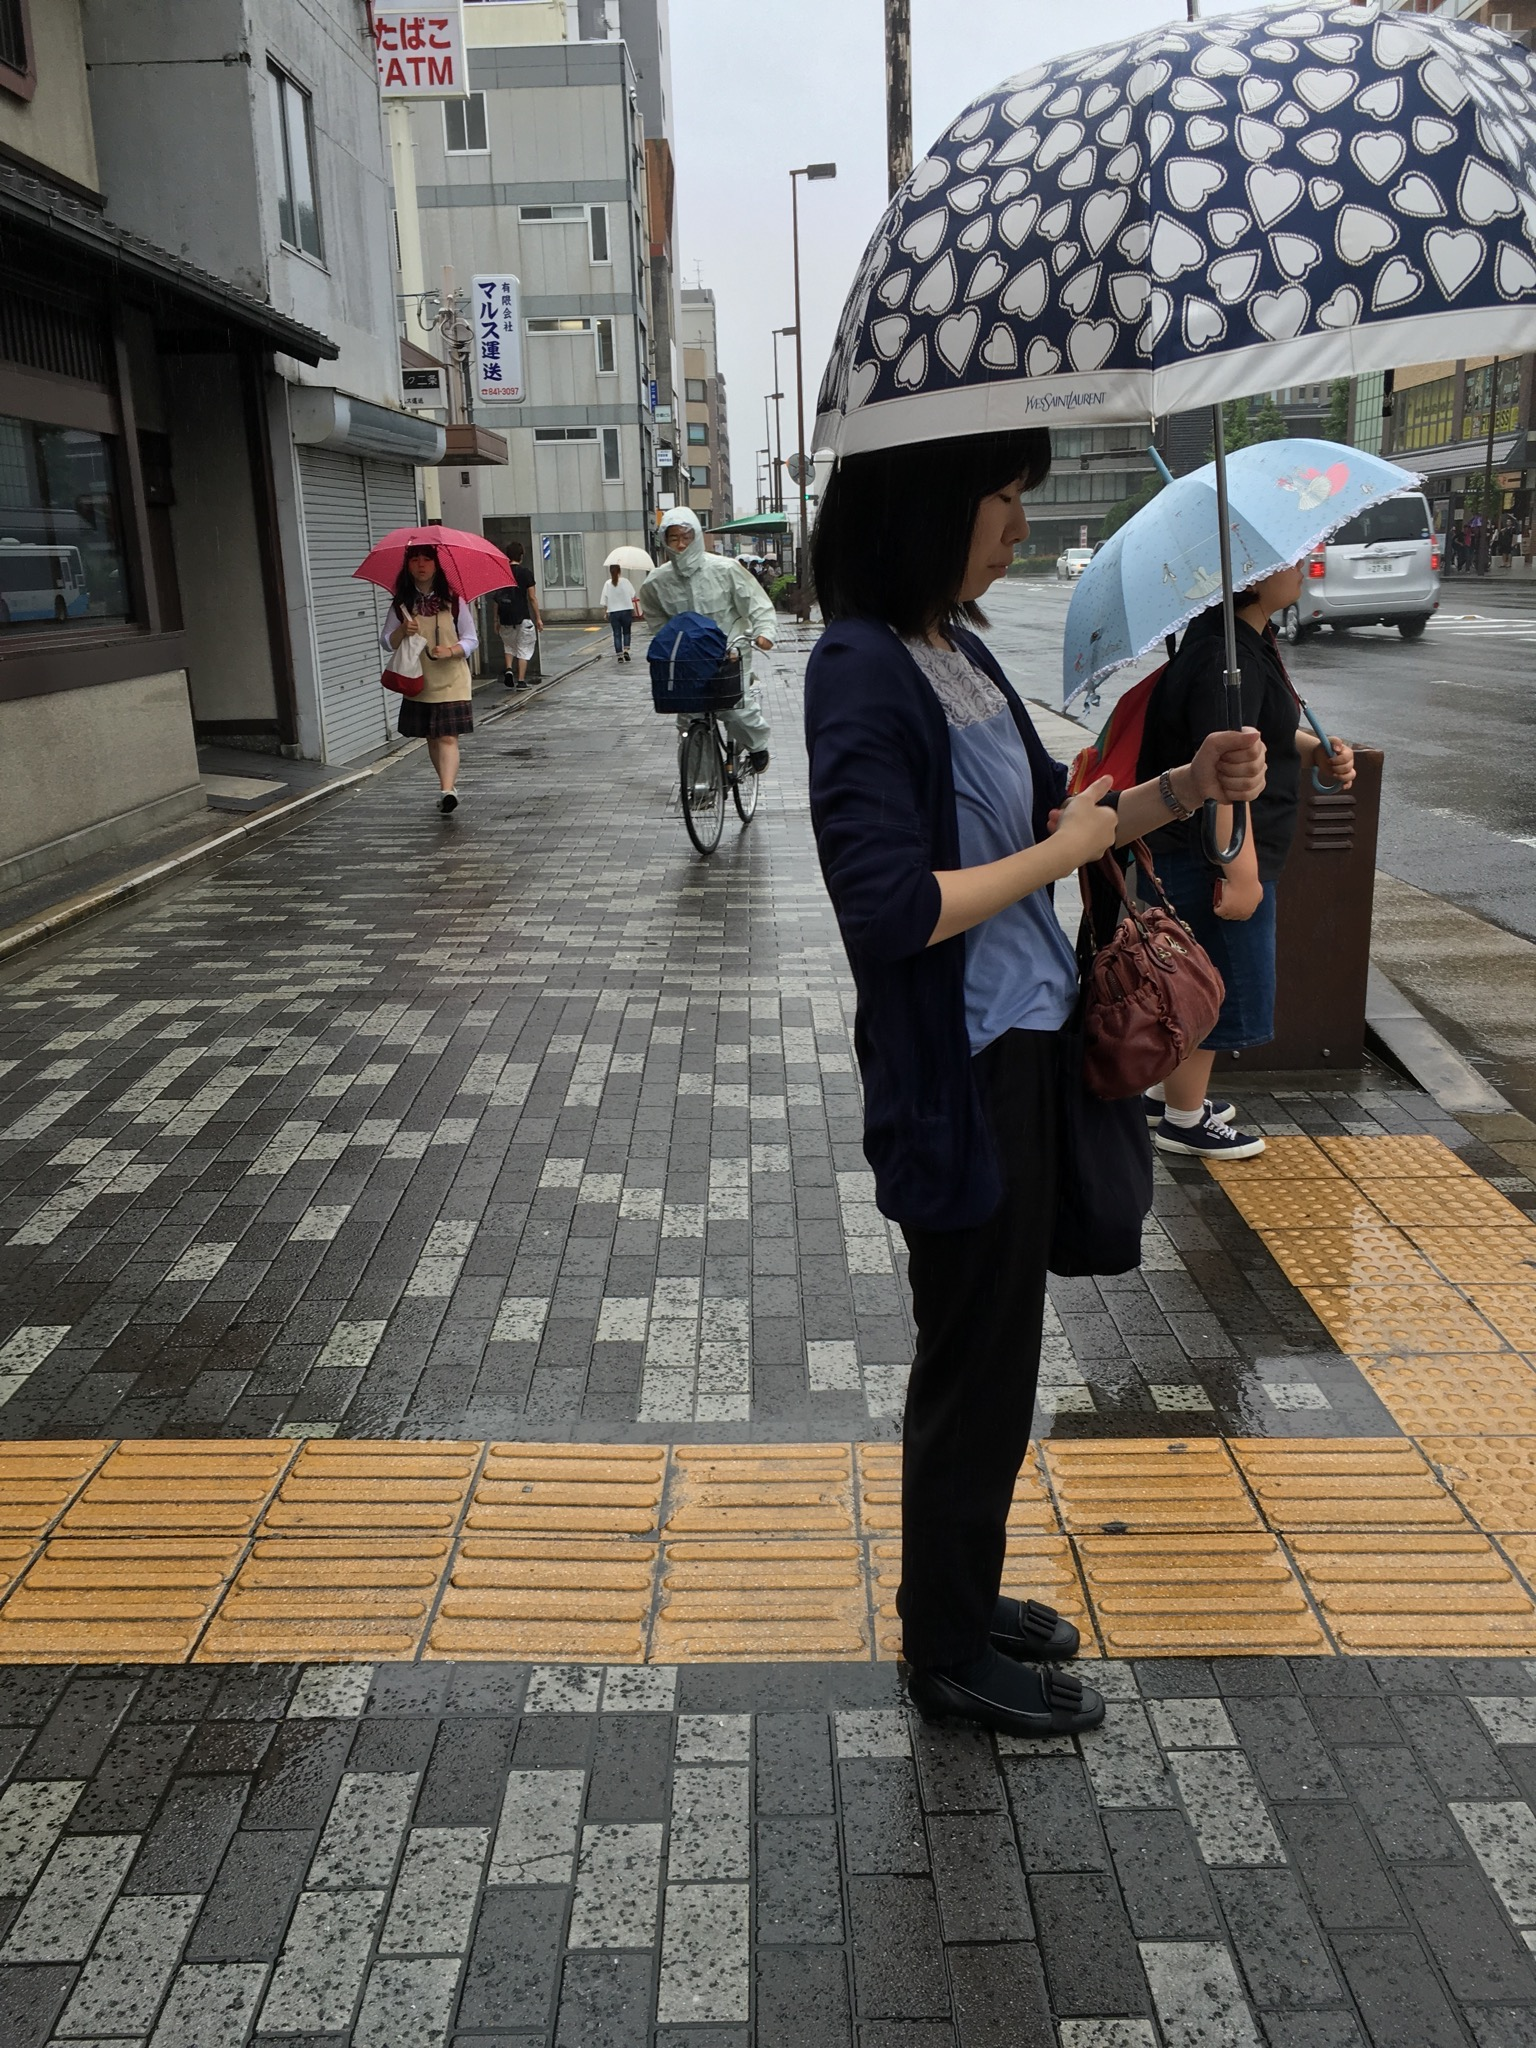 With rain comes umbrellas of many sizes and colours. They make negotiating the streets more challenging, especially with the bikes still weaving in-between the pedestrians. When they have umbrellas as well, such as in the image above, the space becomes even more limited.